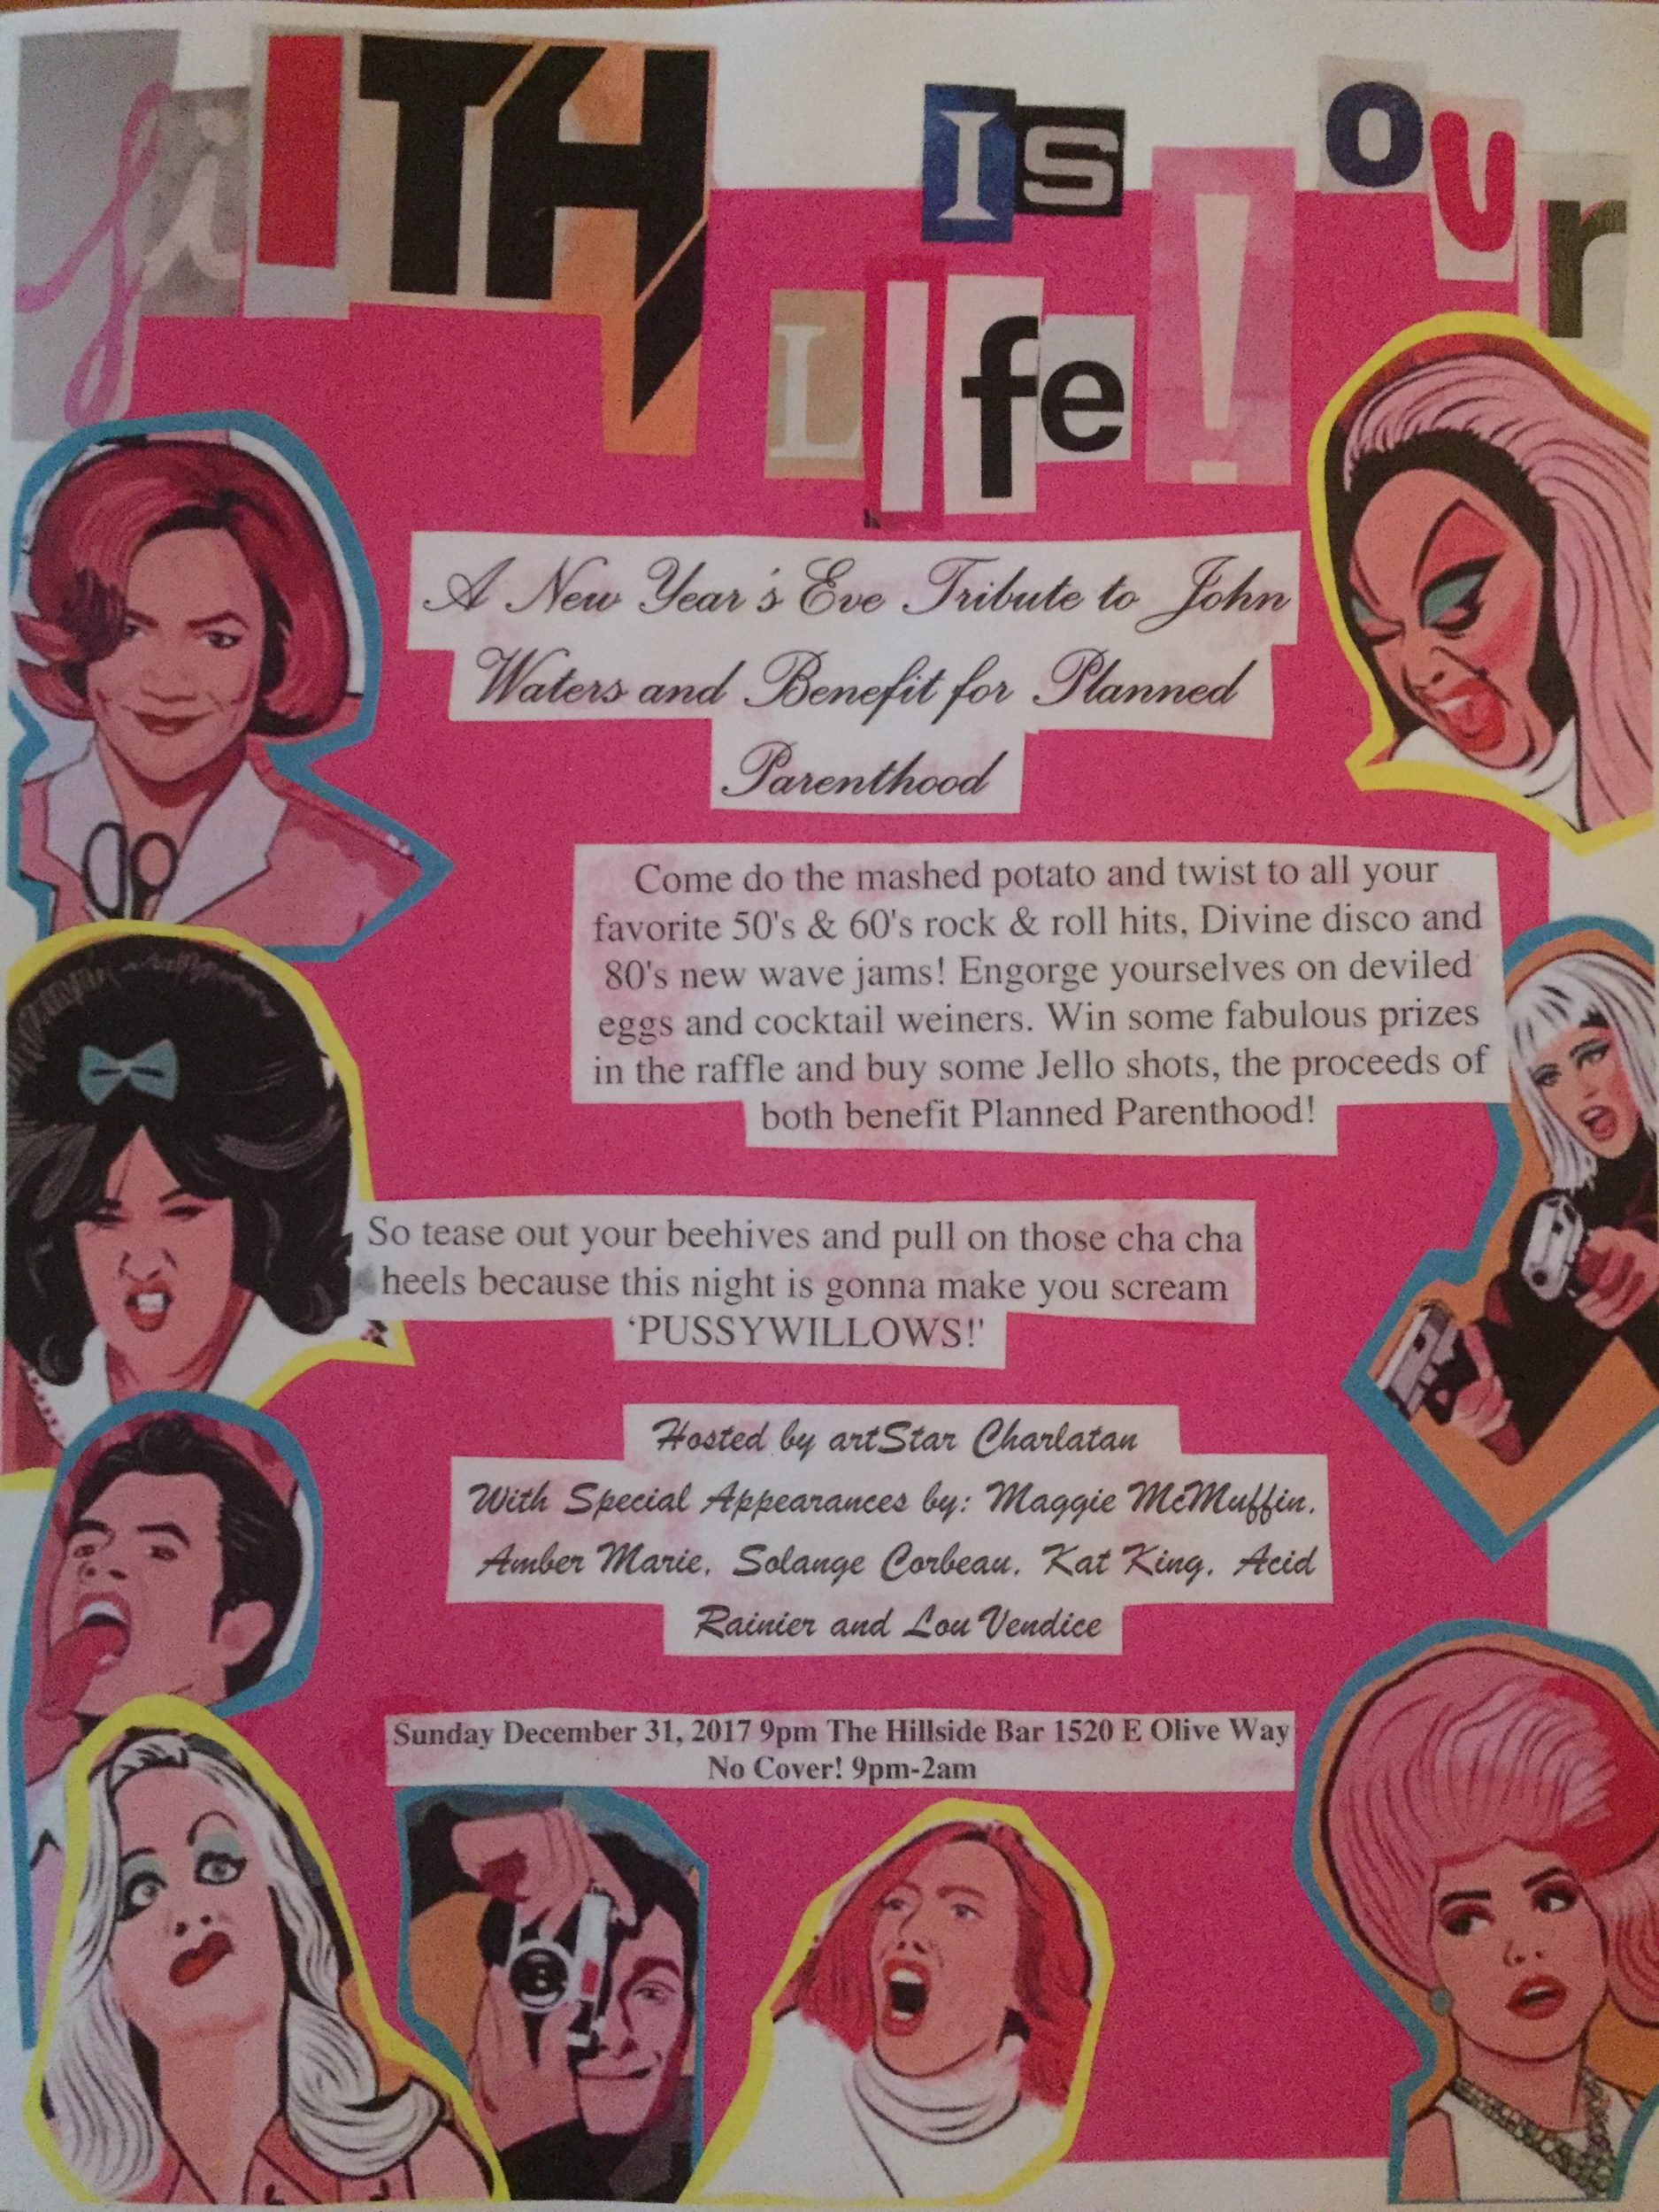 Filth Is Our Life! A New Year's Eve Tribute to John Waters